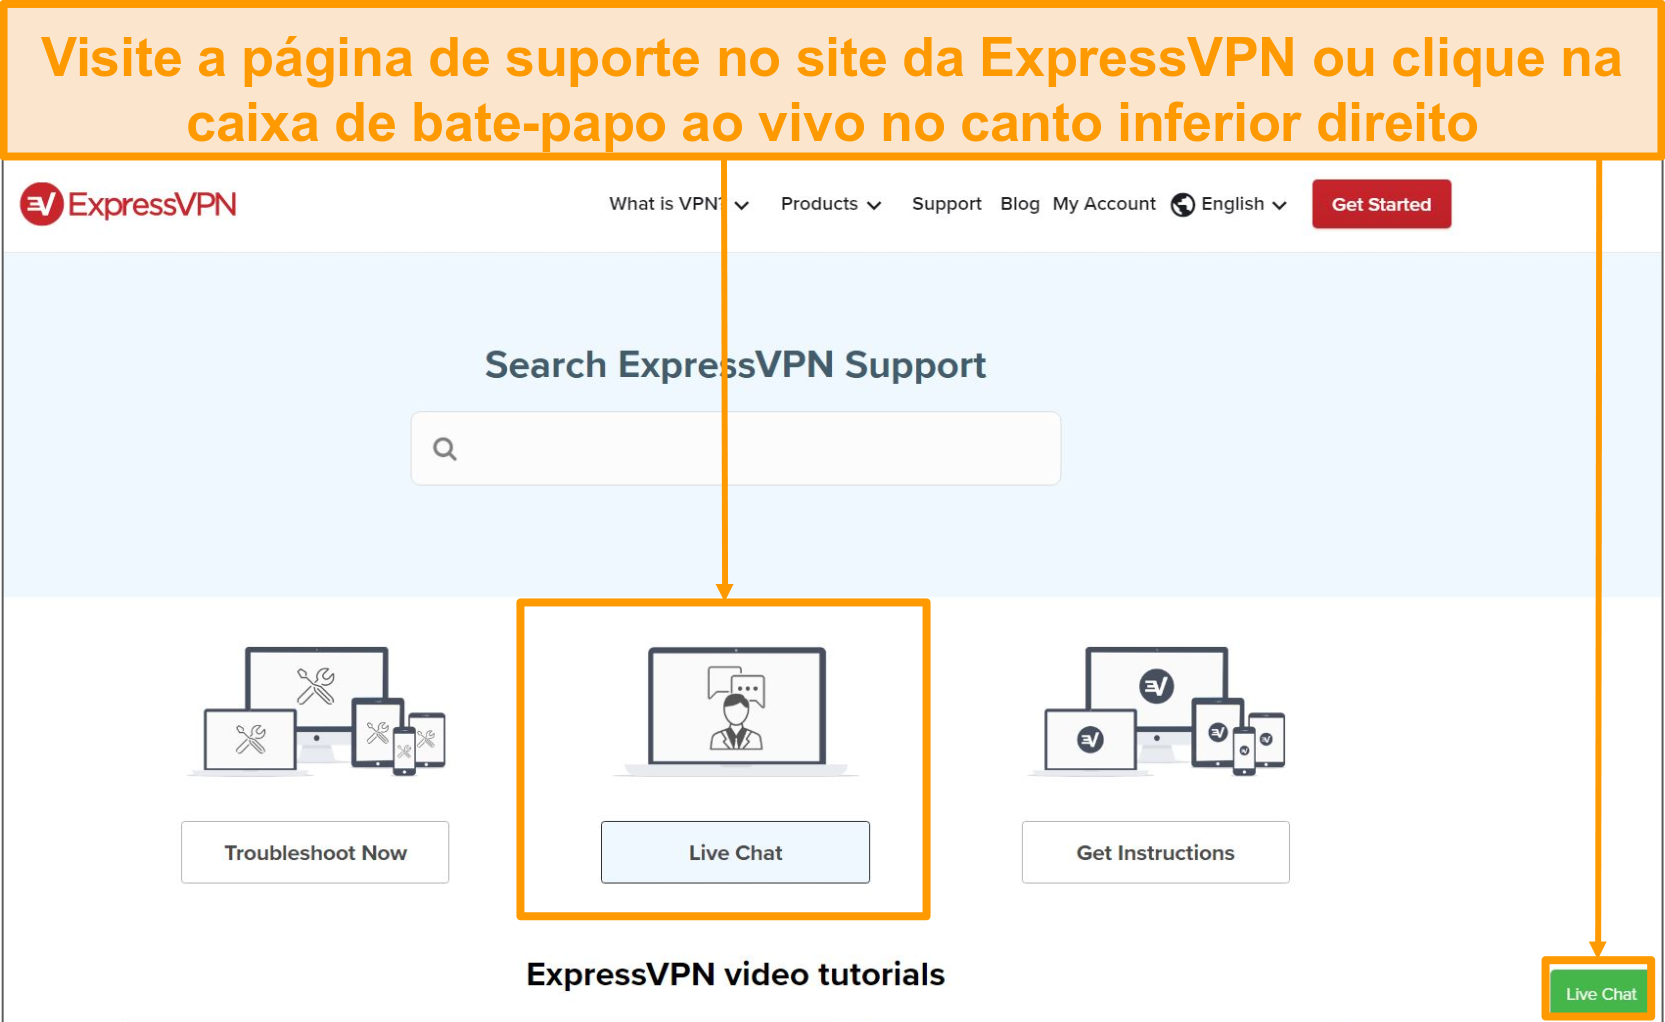 Captura de tela do suporte de chat ao vivo ExpressVPN